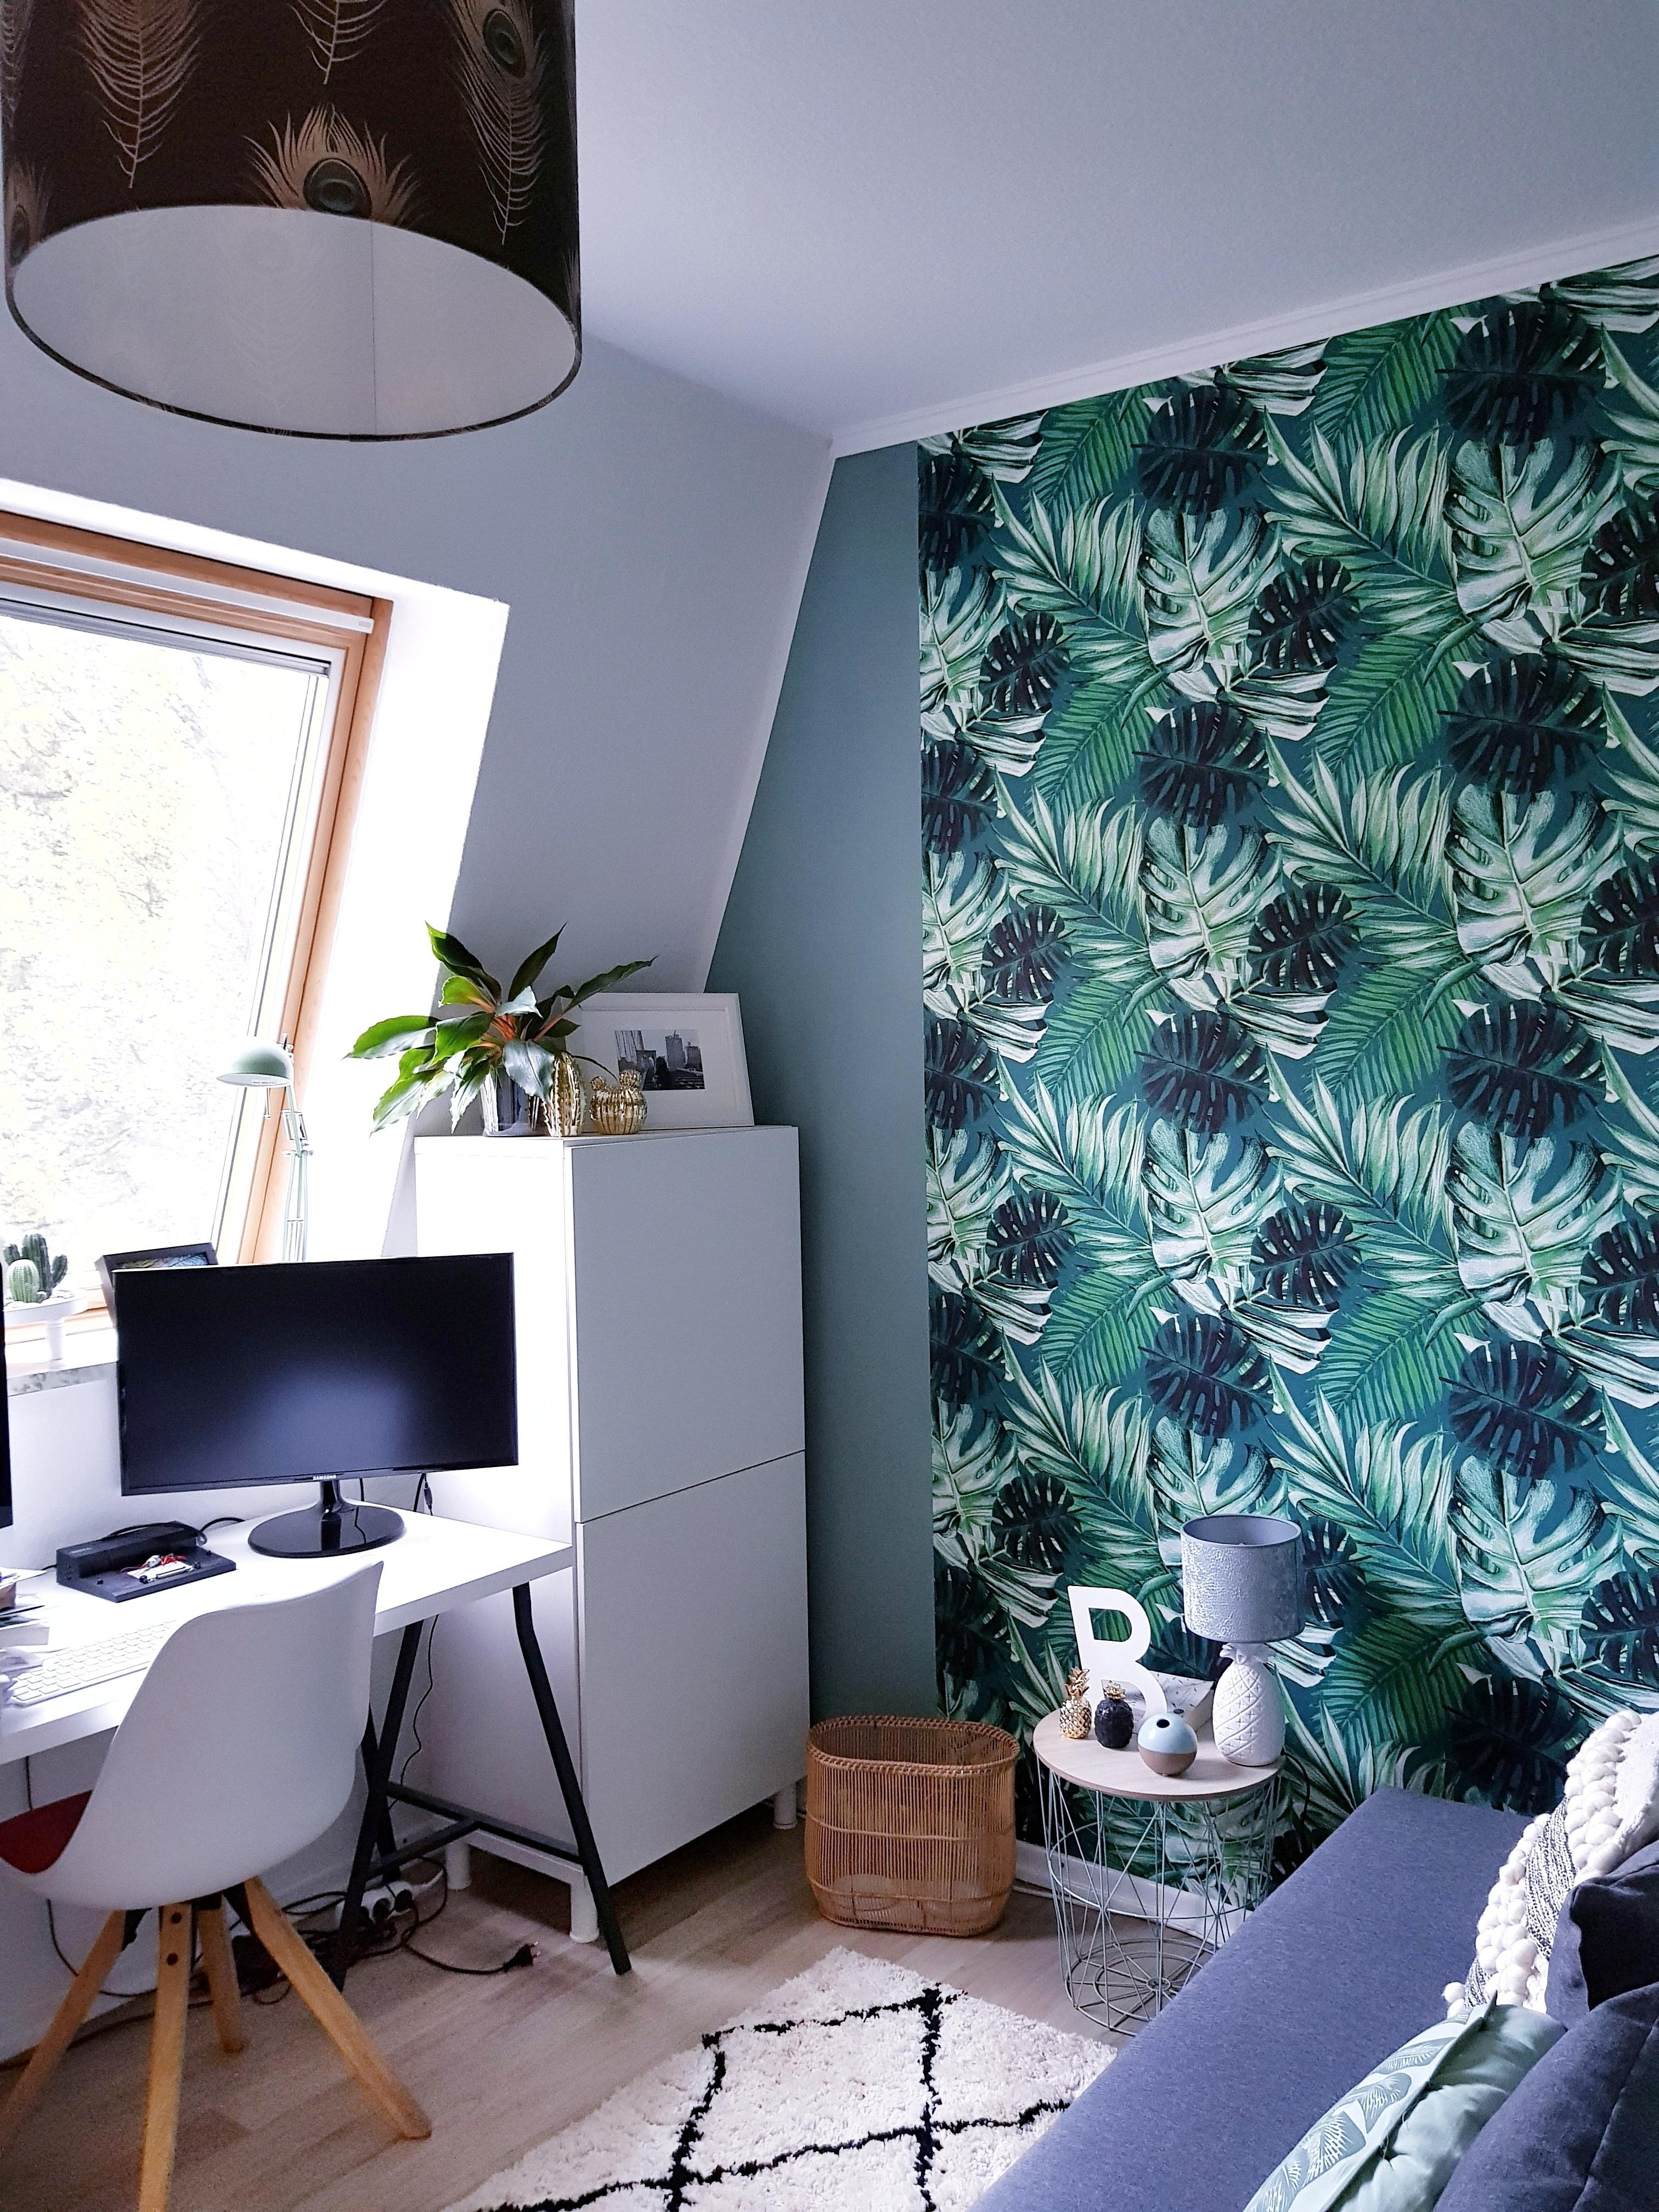 #homeoffice #livingchallenge #büro #wallpaper